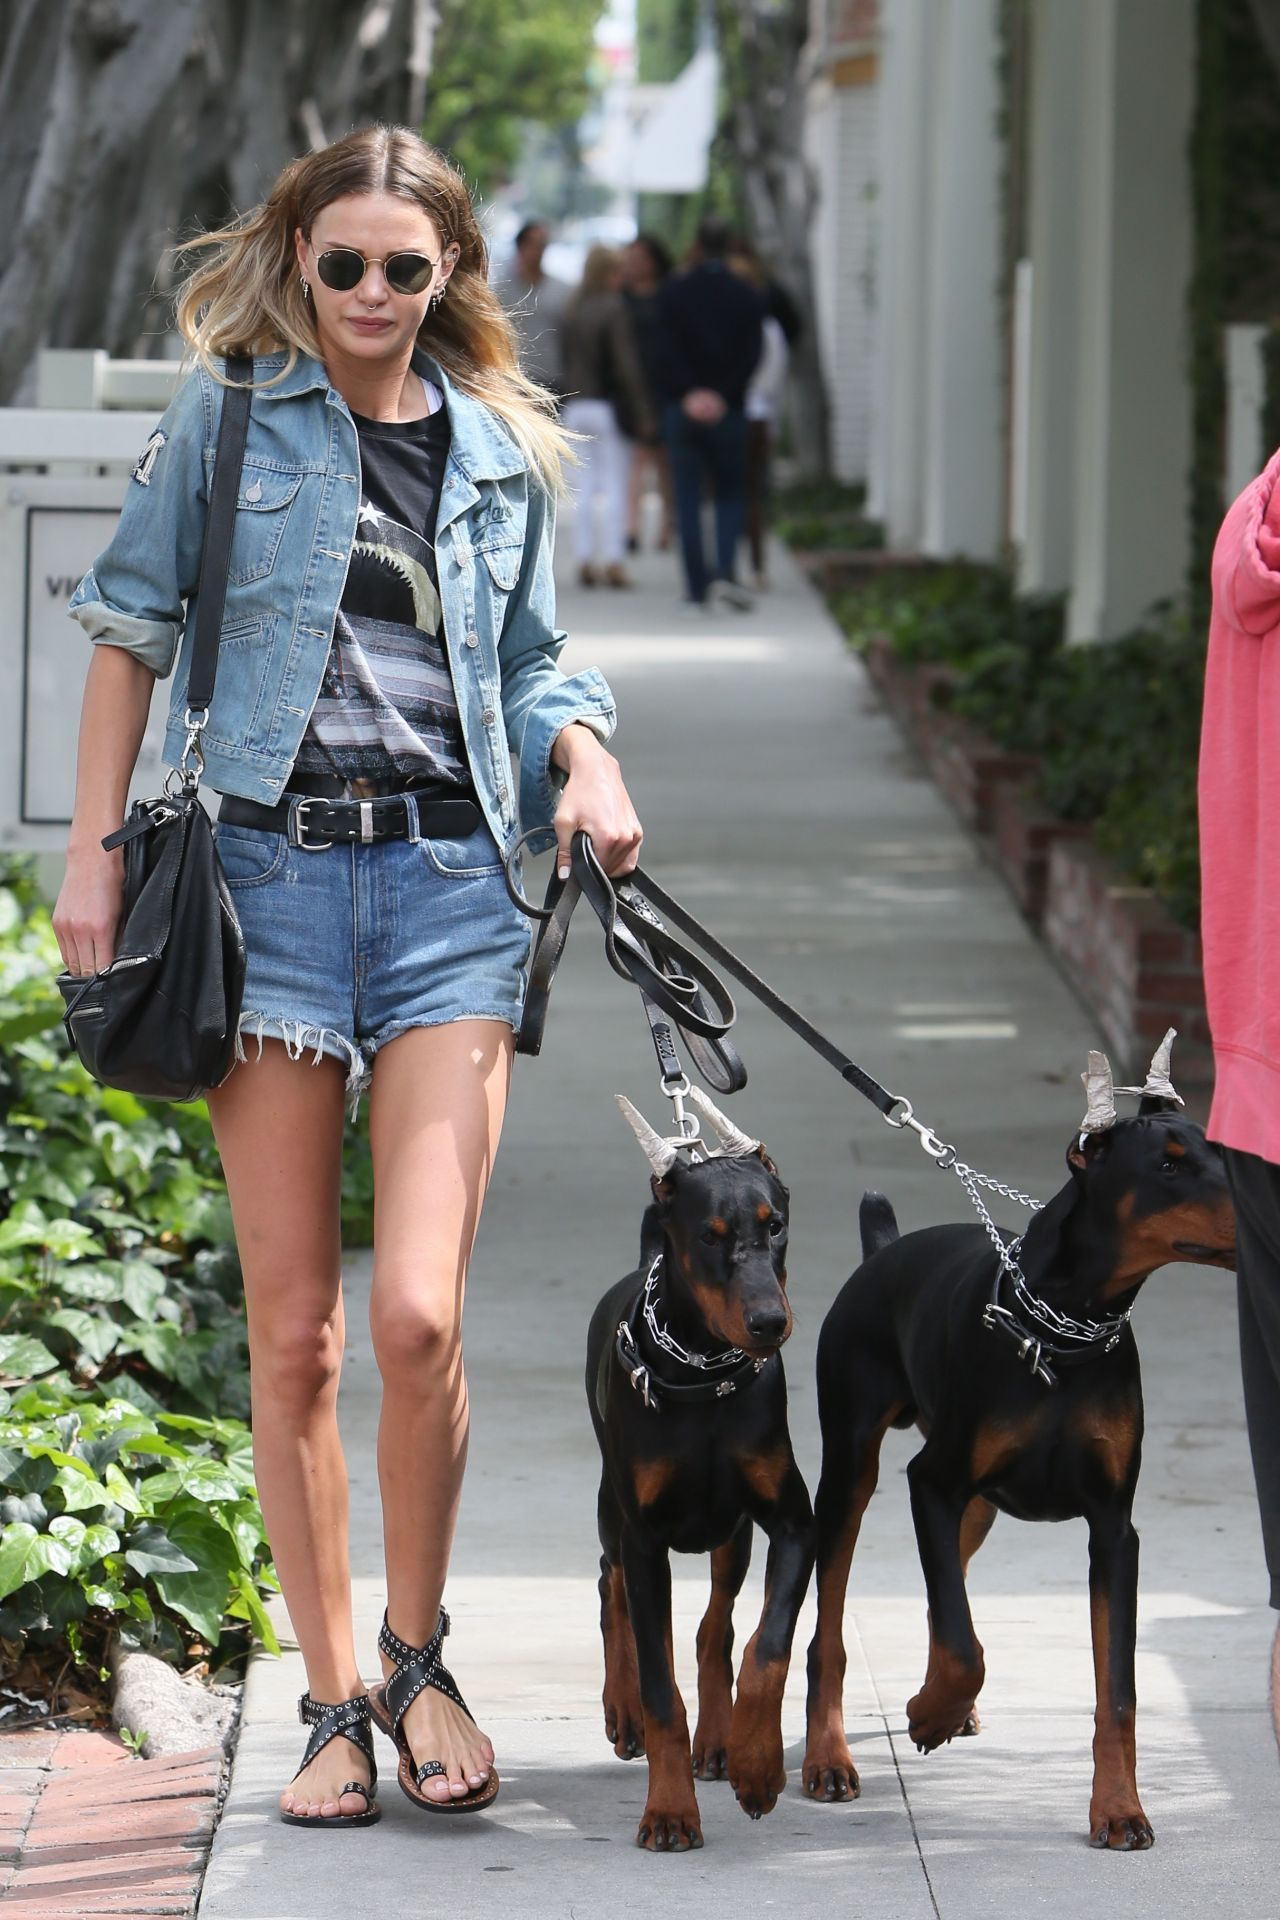 C Dc Image A besides Mckayla Maroney In Shorts X furthermore Billboard Music Awards Press Room Gyfwadwnciwl in addition A B F Cd Ce Cb F C Cb A also Charlotte Mckinney In Denim Shorts At Dwts Practice X. on mariah carey short shorts